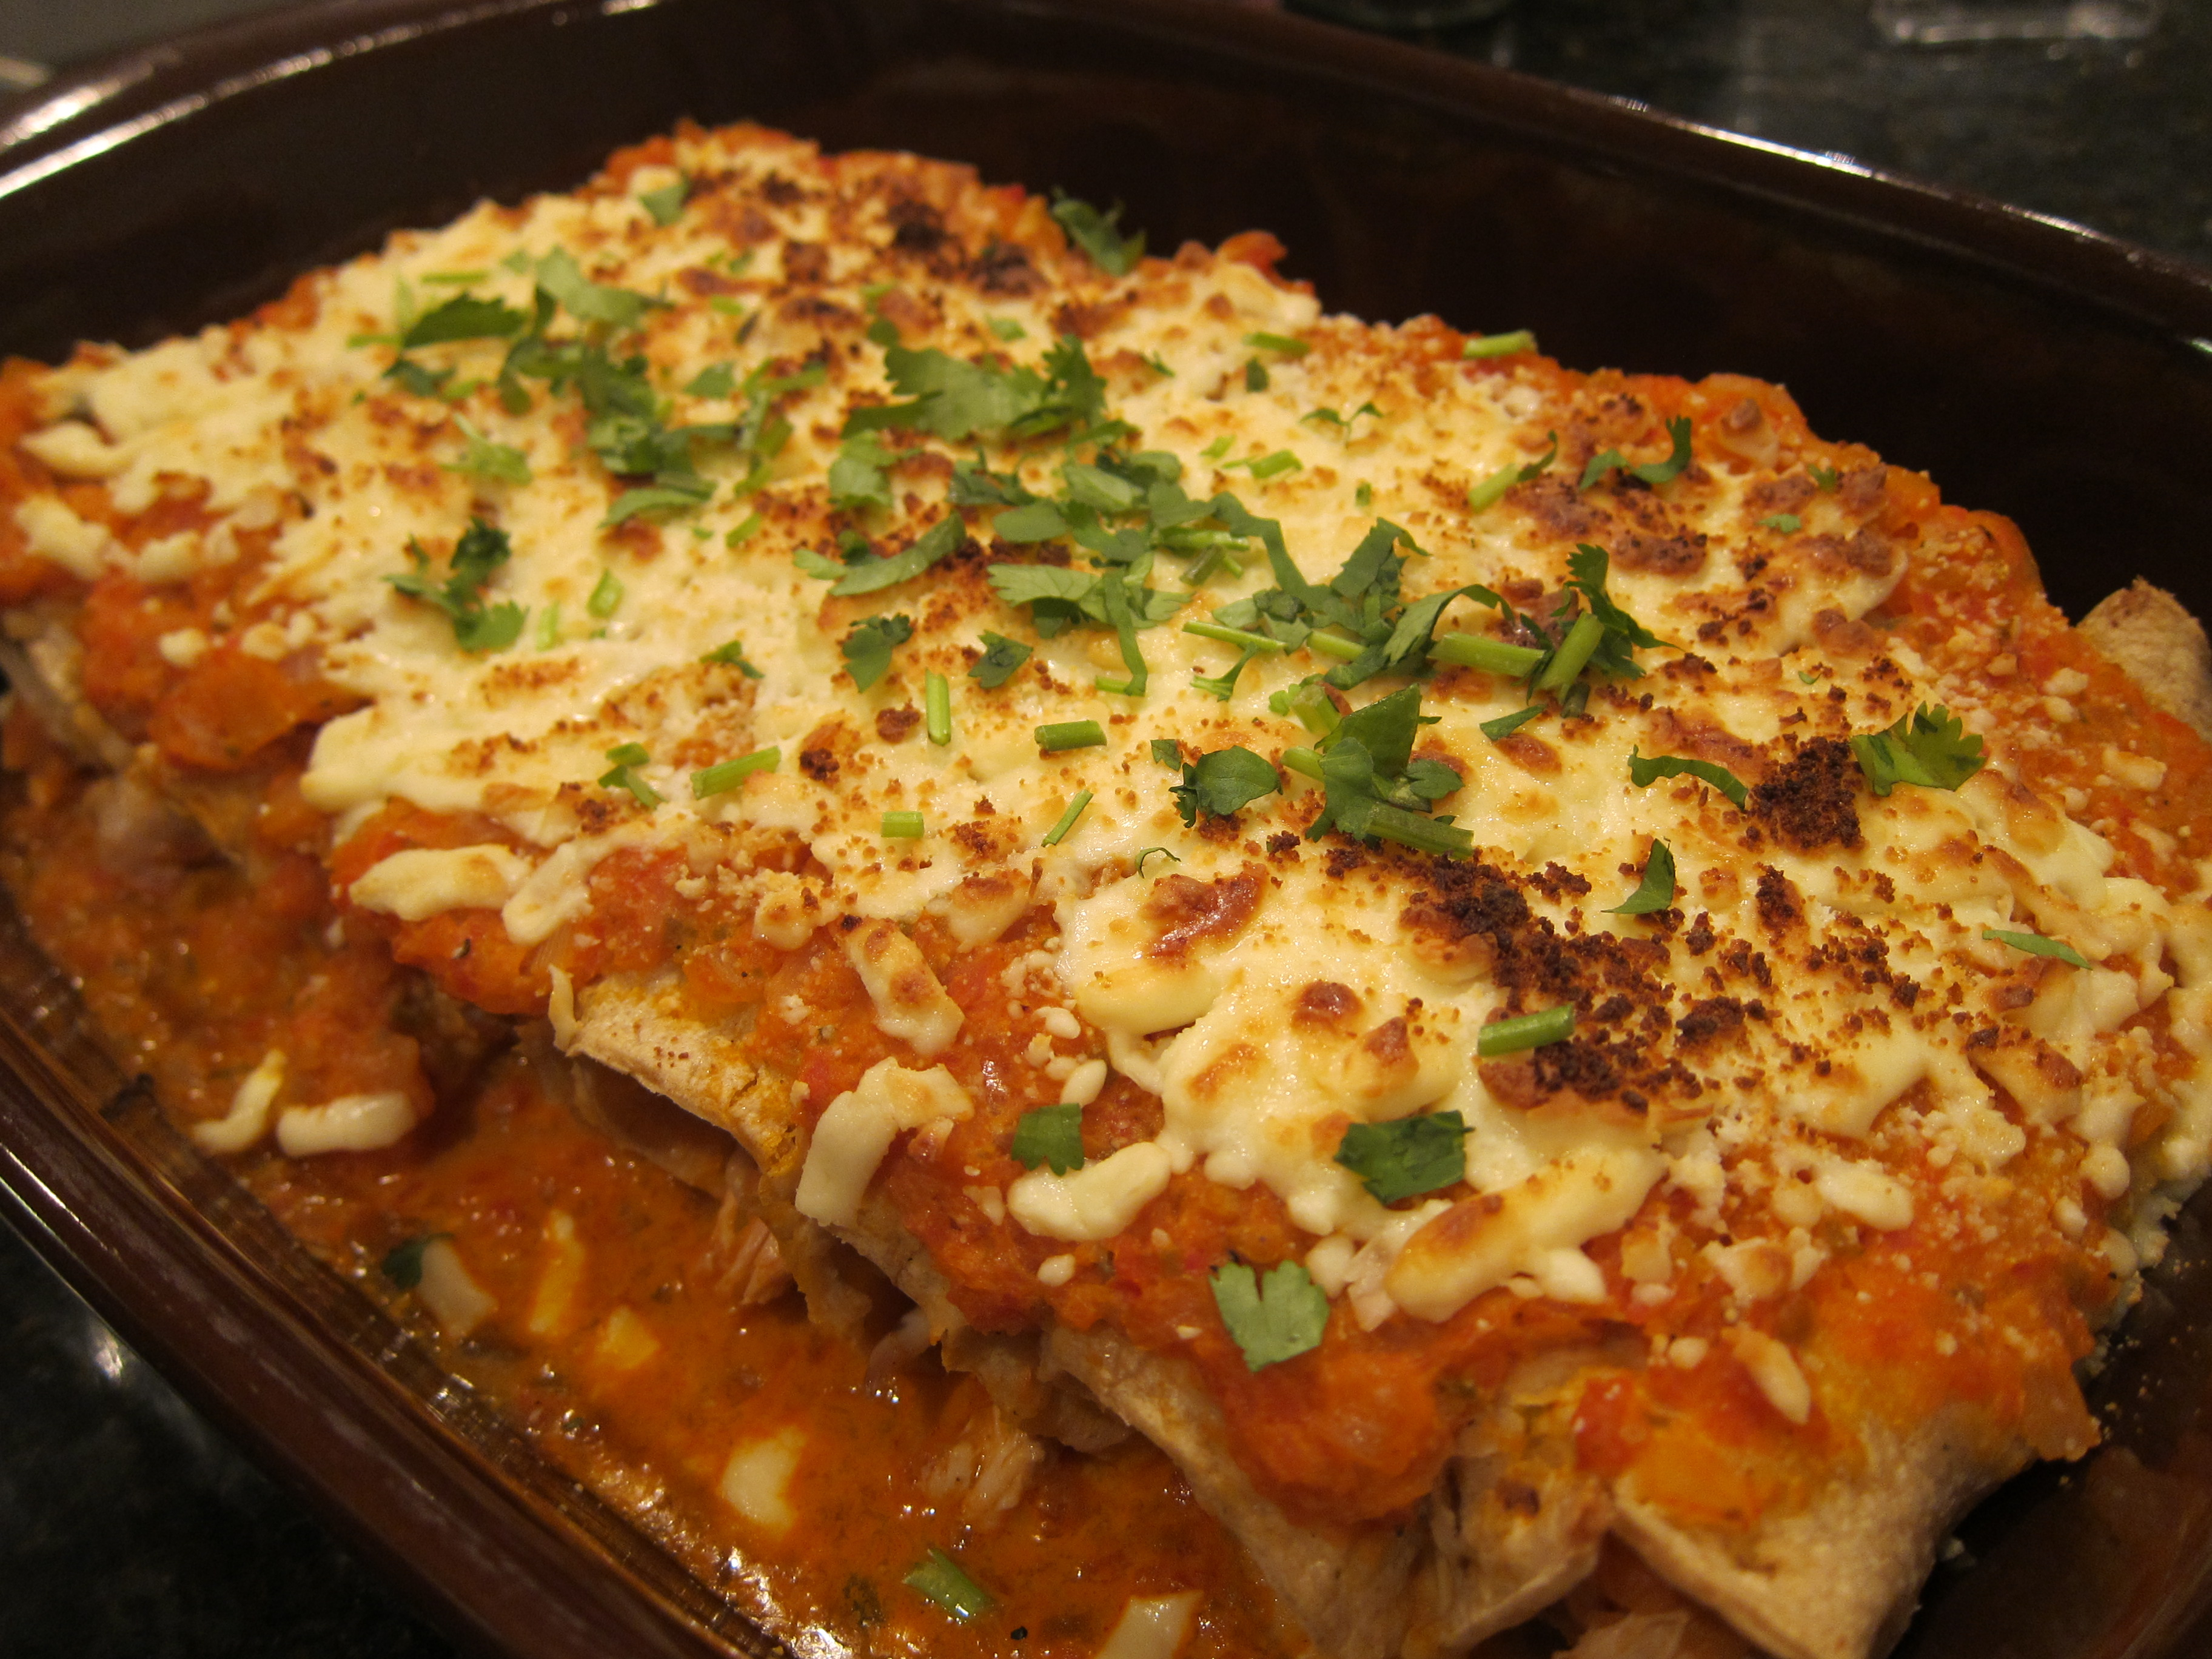 Thursday: Enchiladas Suizas with Chicken, Refried Beans, Mexican Salsa ...